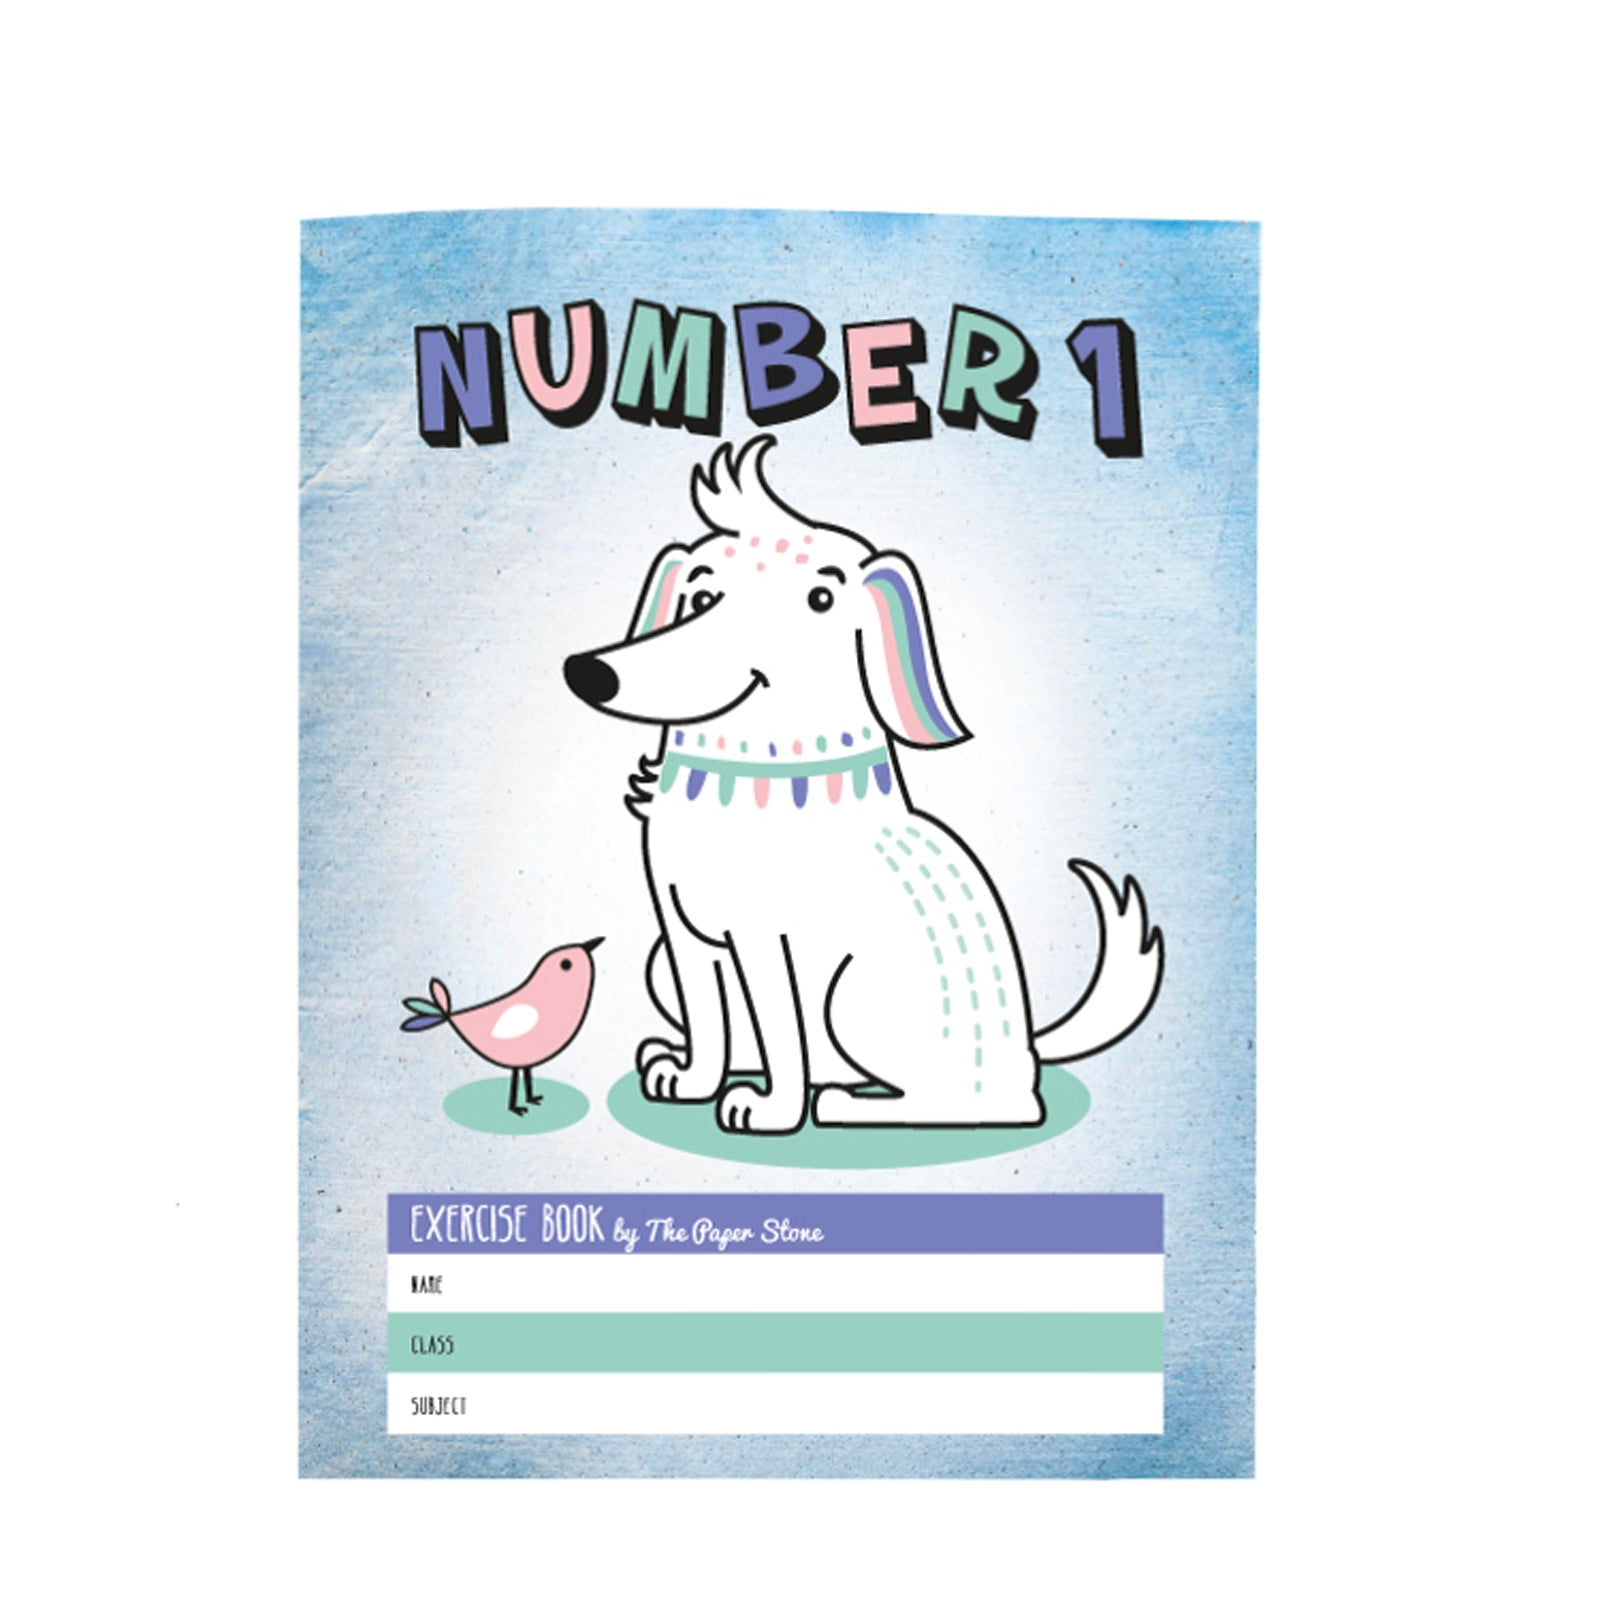 Exercise Book - Top Dog